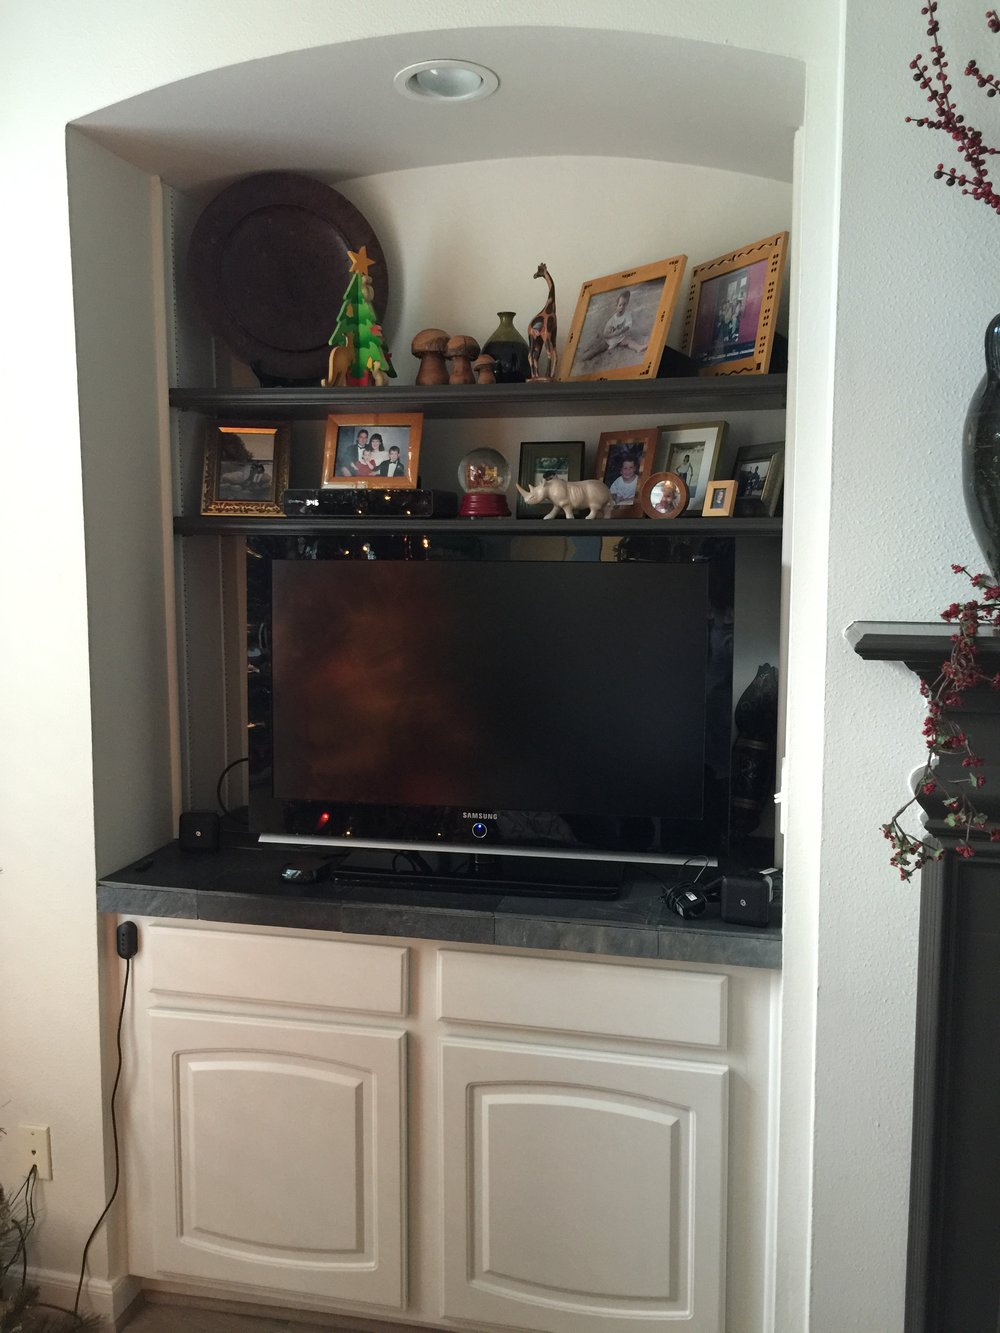 Existing tv niche to be redone